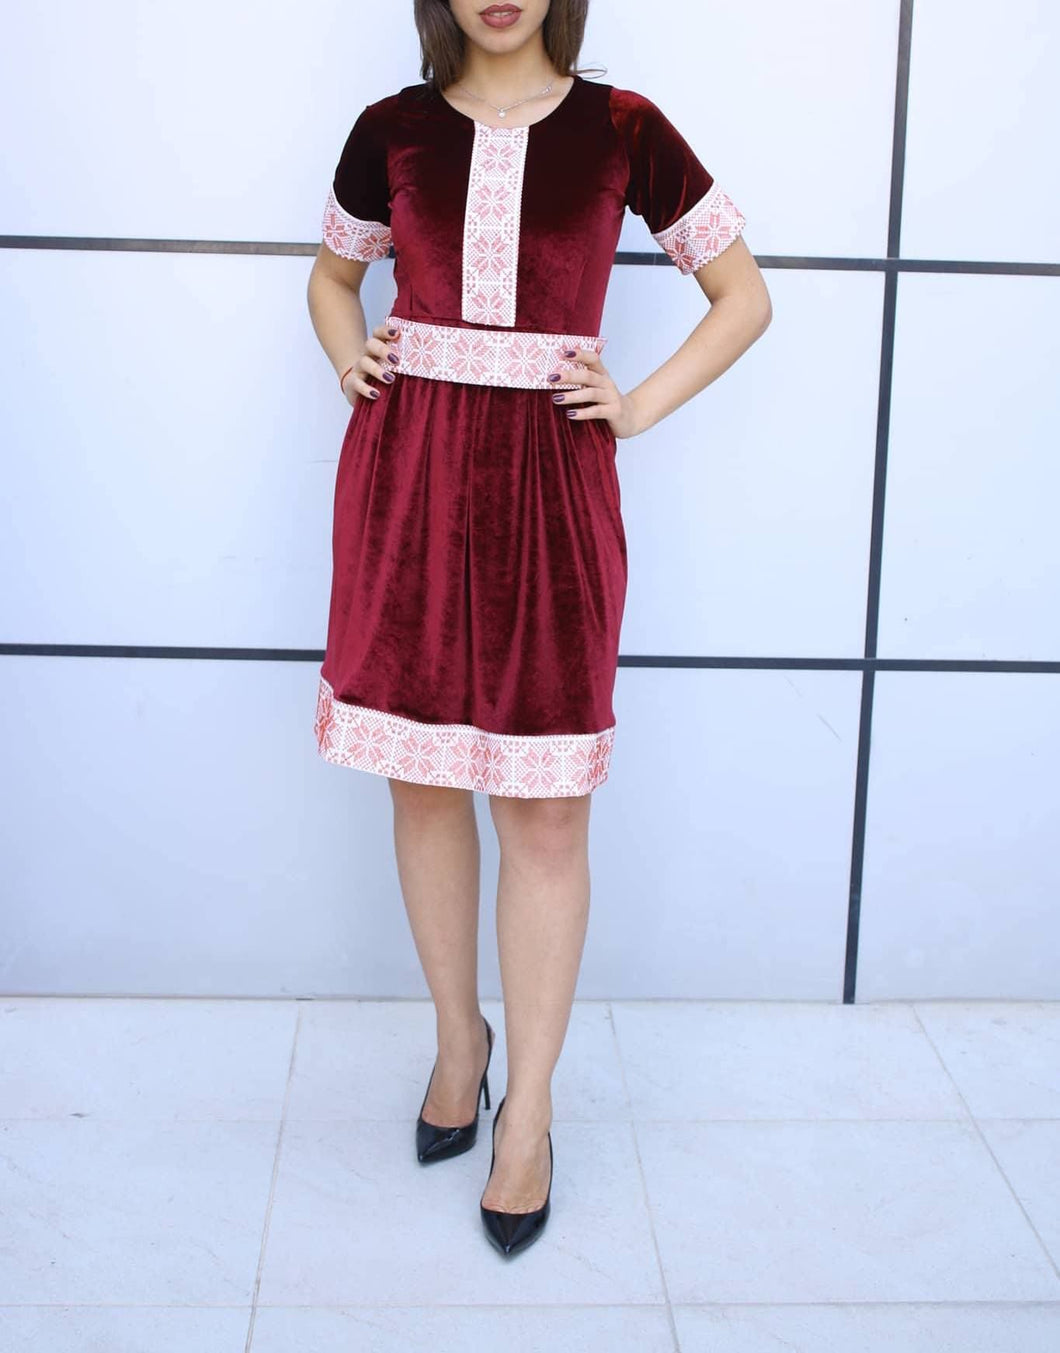 Stylish Red Velvet Short Dress With Beautiful Embroidery